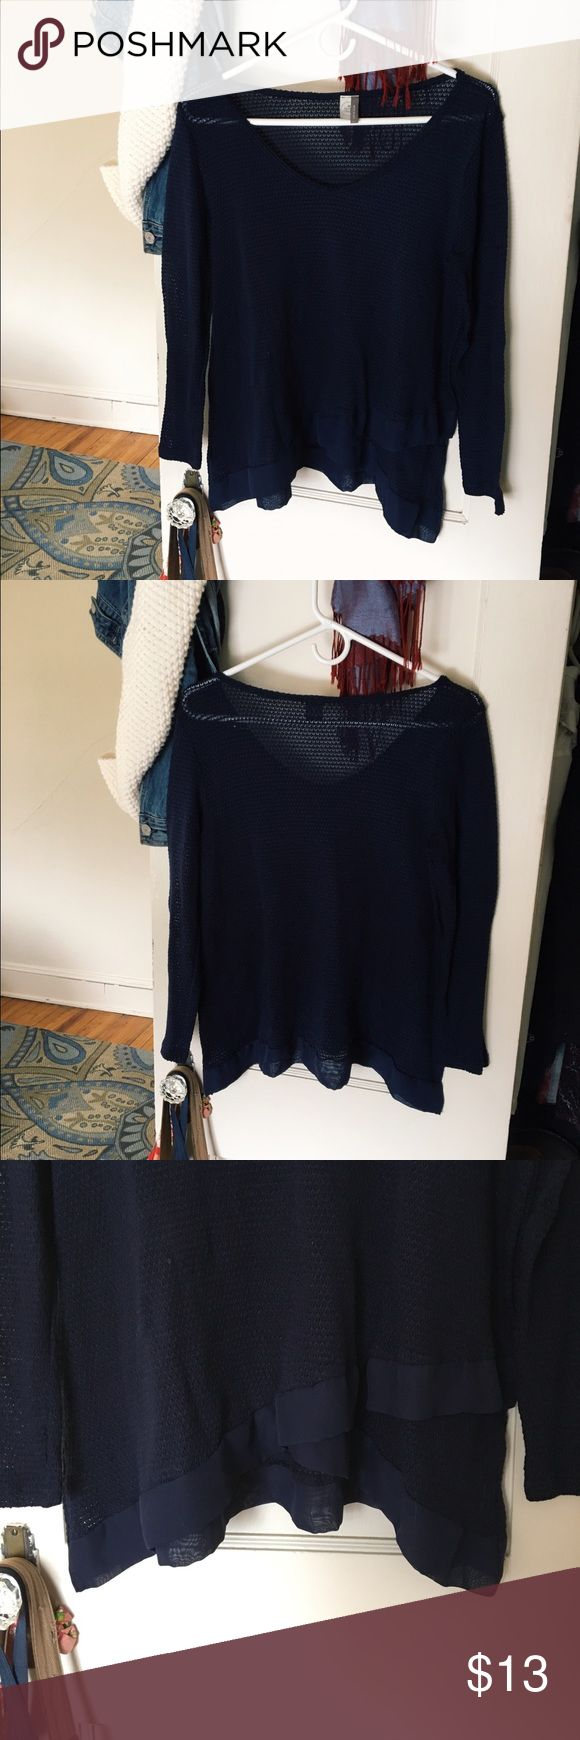 Navy Long Sleeve Top Navy top from boutique Ruby & Jenna. Size Large semi see-through. Lulu's Tops Blouses